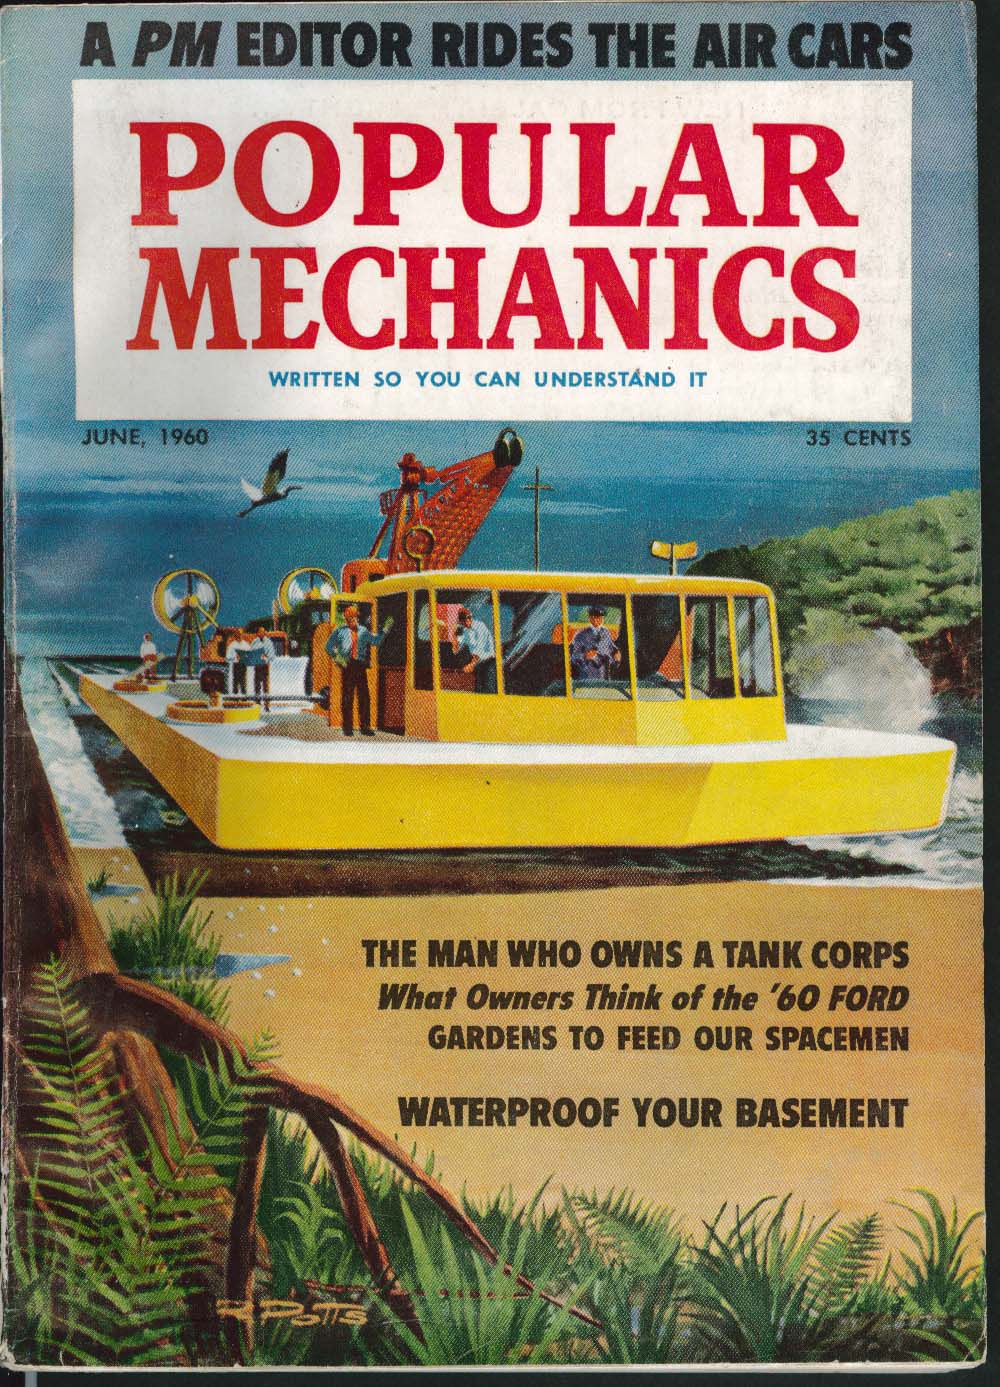 Image for POPULAR MECHANICS Ford road test Tank Corps Waterproof Basement Whales ++ 6 1960